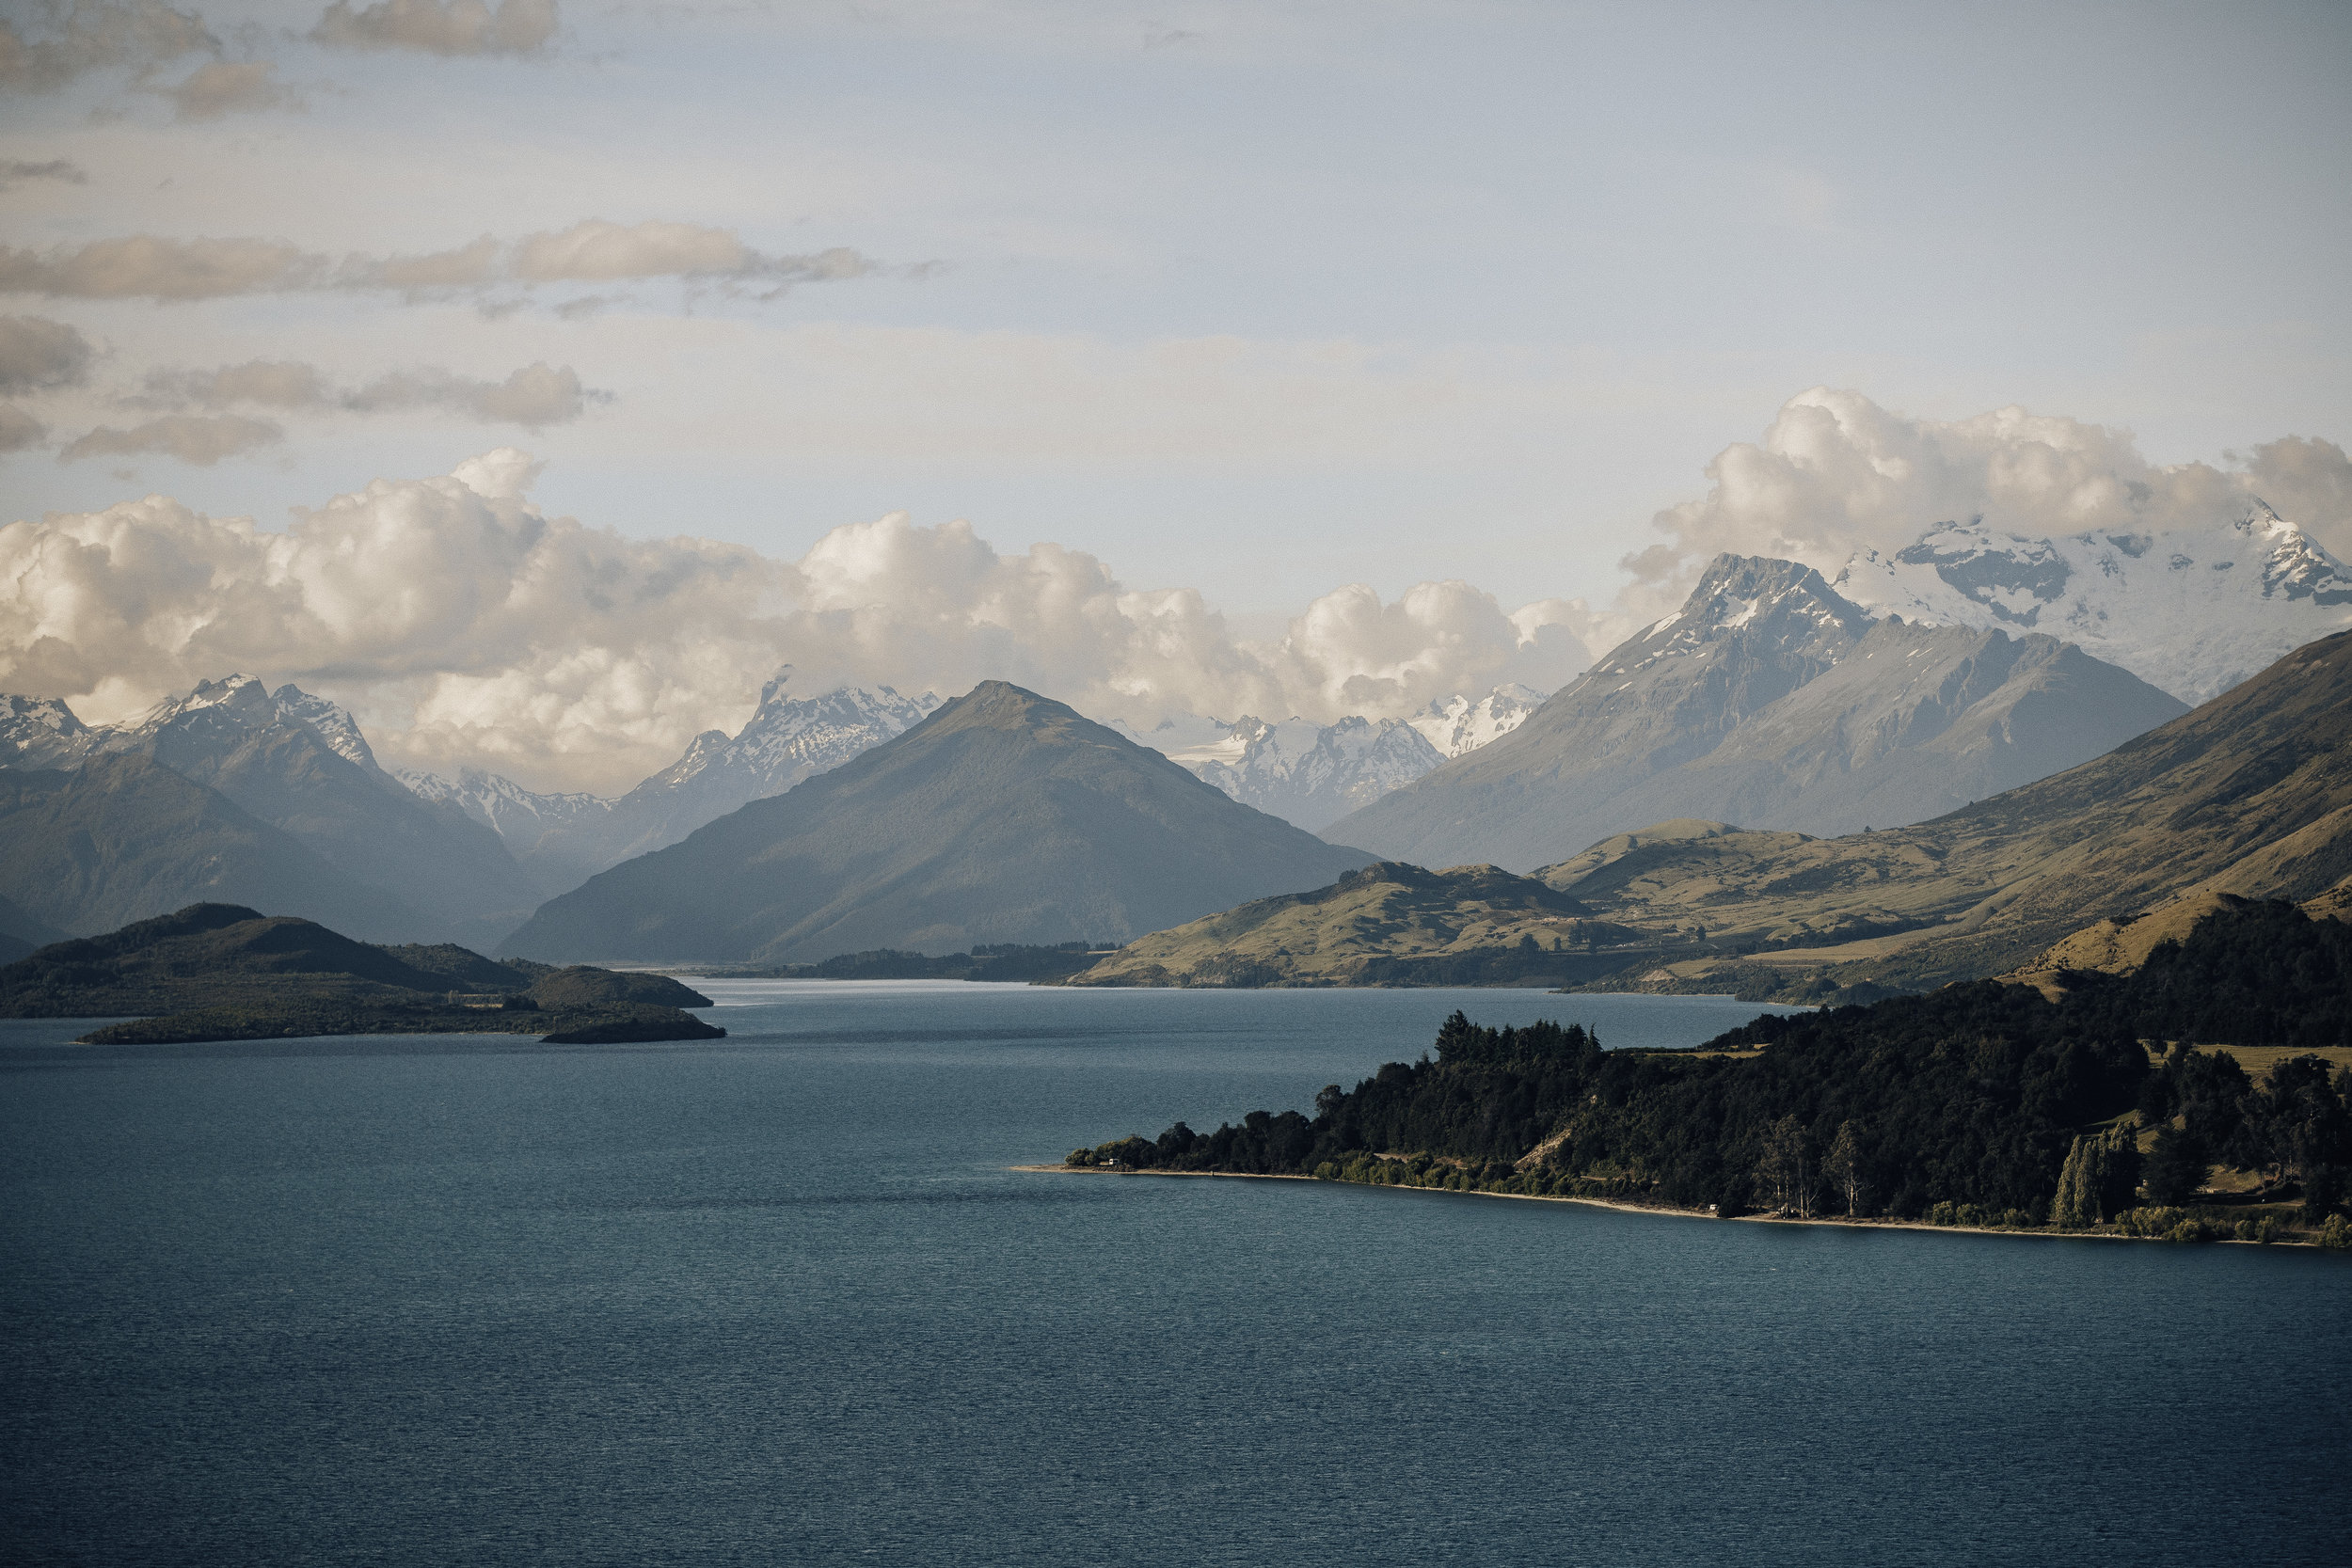 The drive to Glenorchy